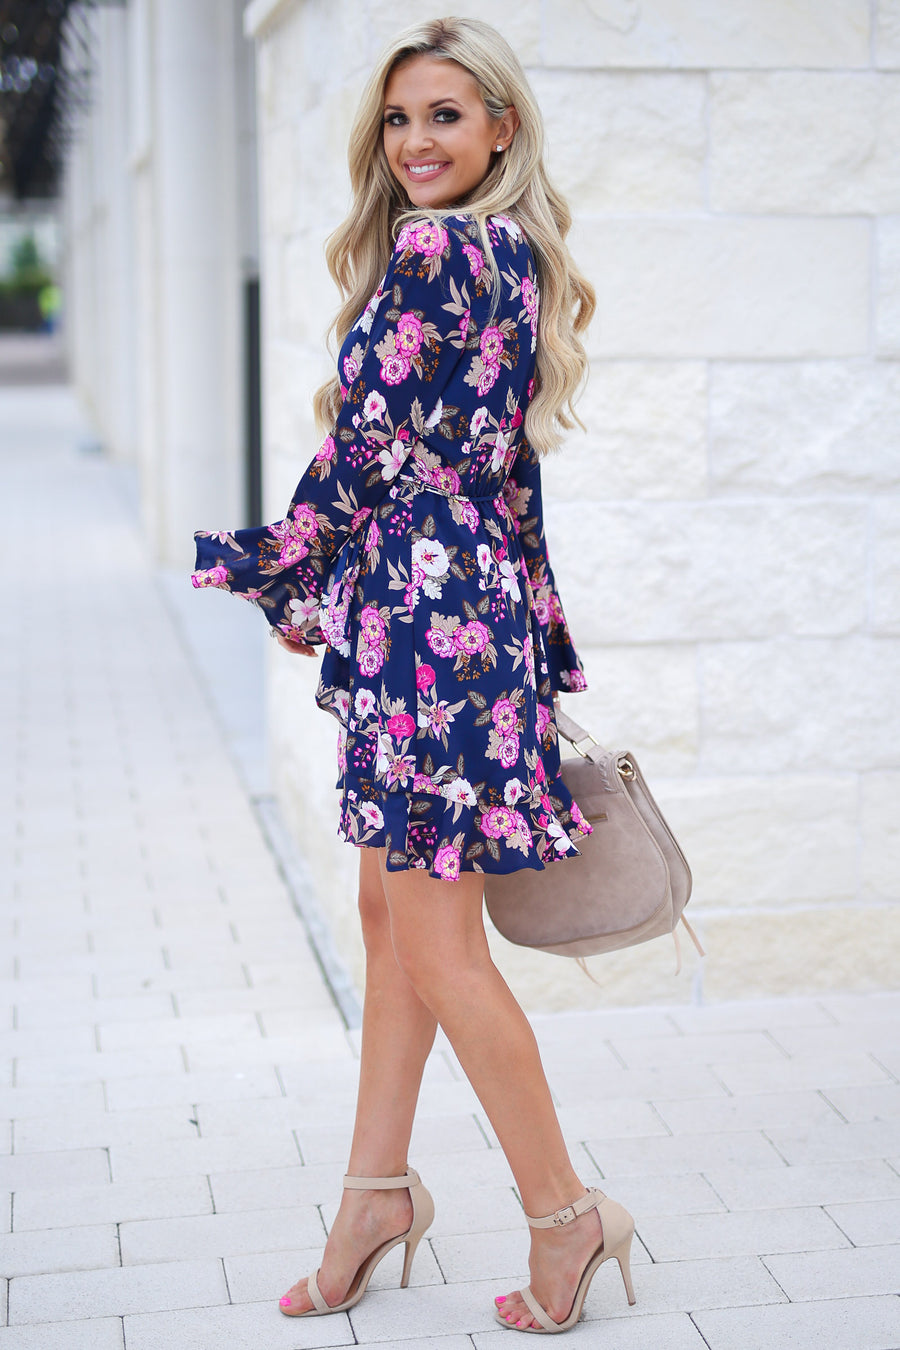 Flirty In Floral Wrap Dress - Navy fuchsia and white flowers, ruffle sleeves, adorable, closet candy boutique 1